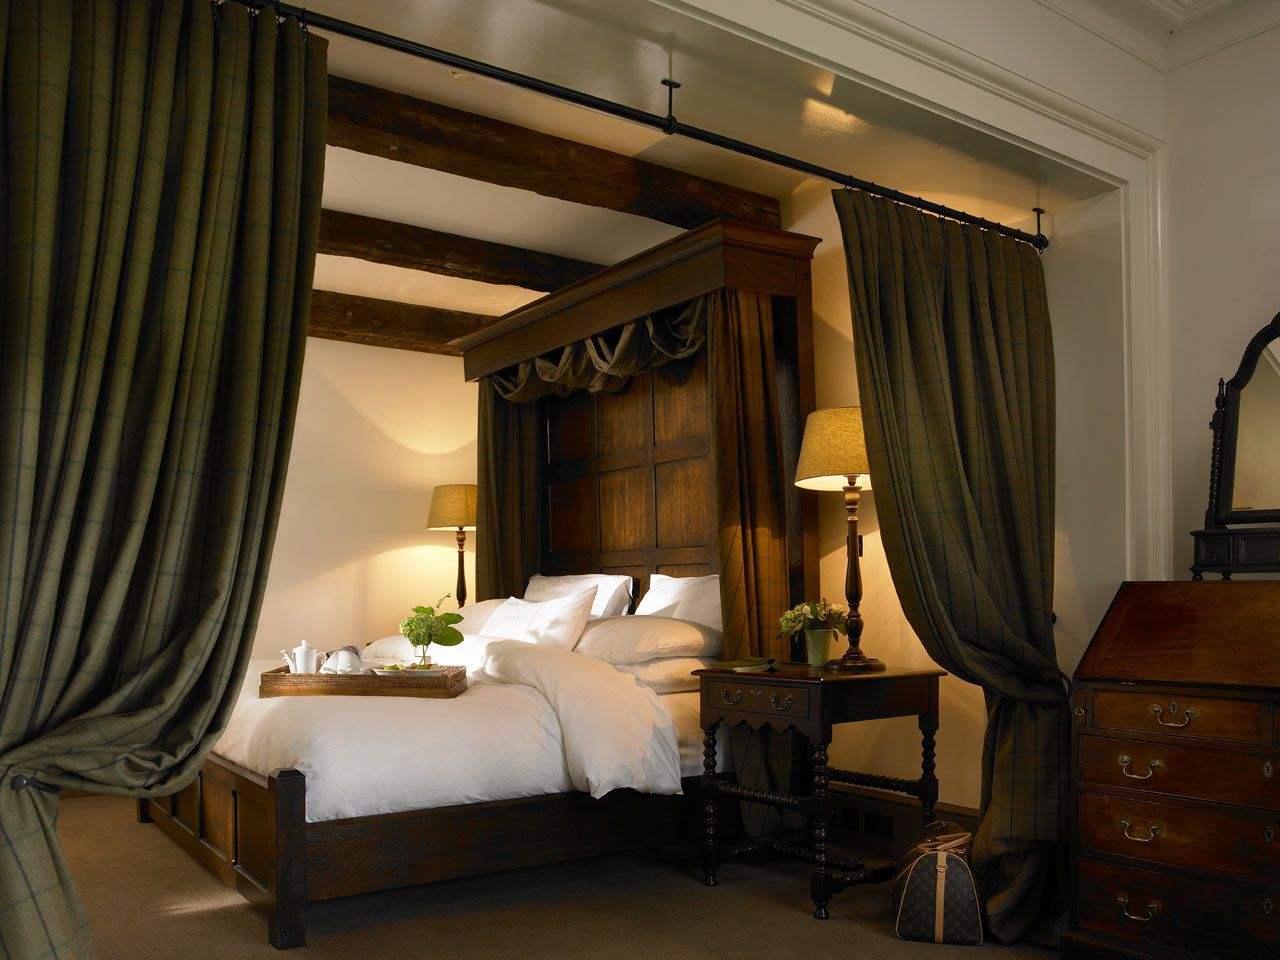 Luxury Accommodation Ireland, Luxury Accommodation in Clare - The 5 Star Lodge At Doonbeg, Co. Clare